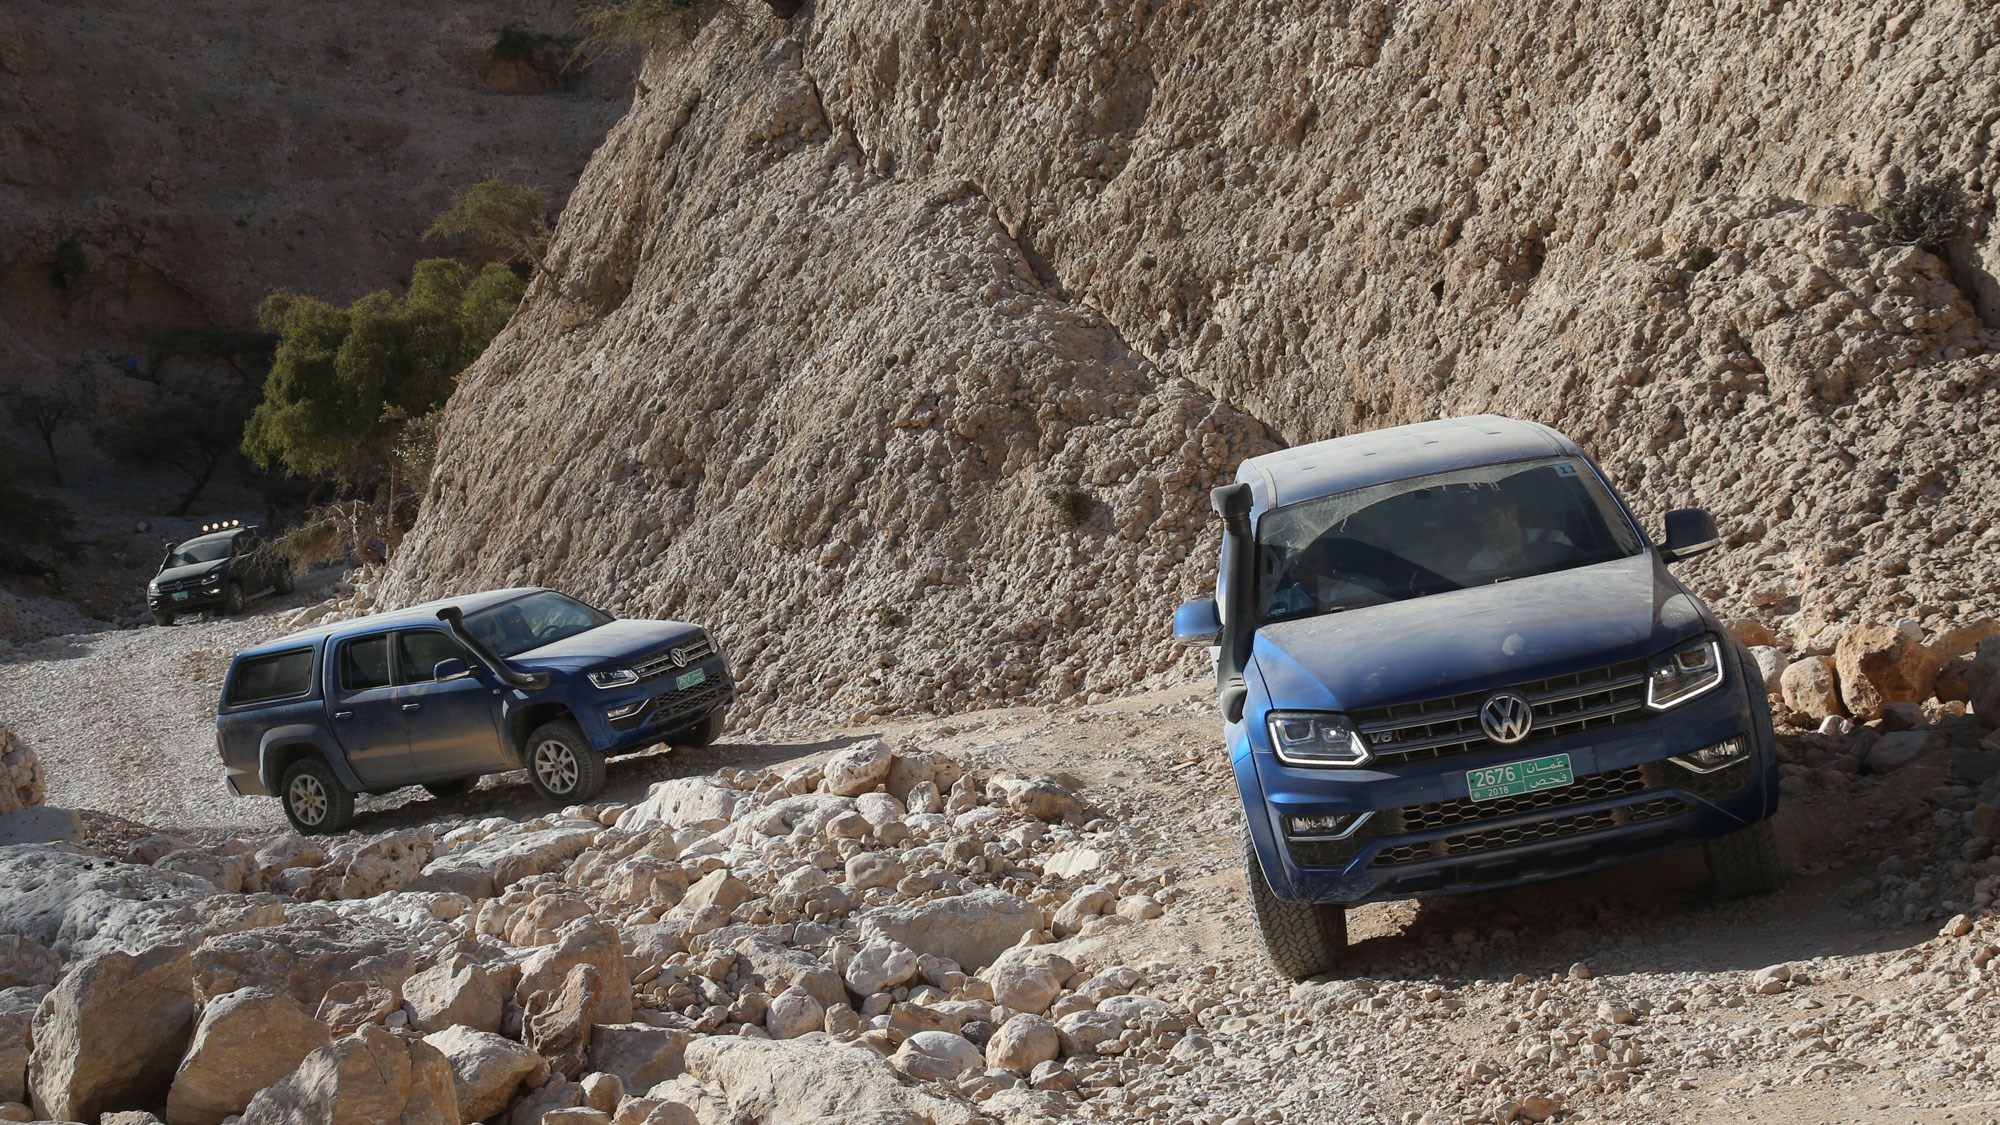 Convoy Of Dusty Vw Amaroks In The Omani Mountains